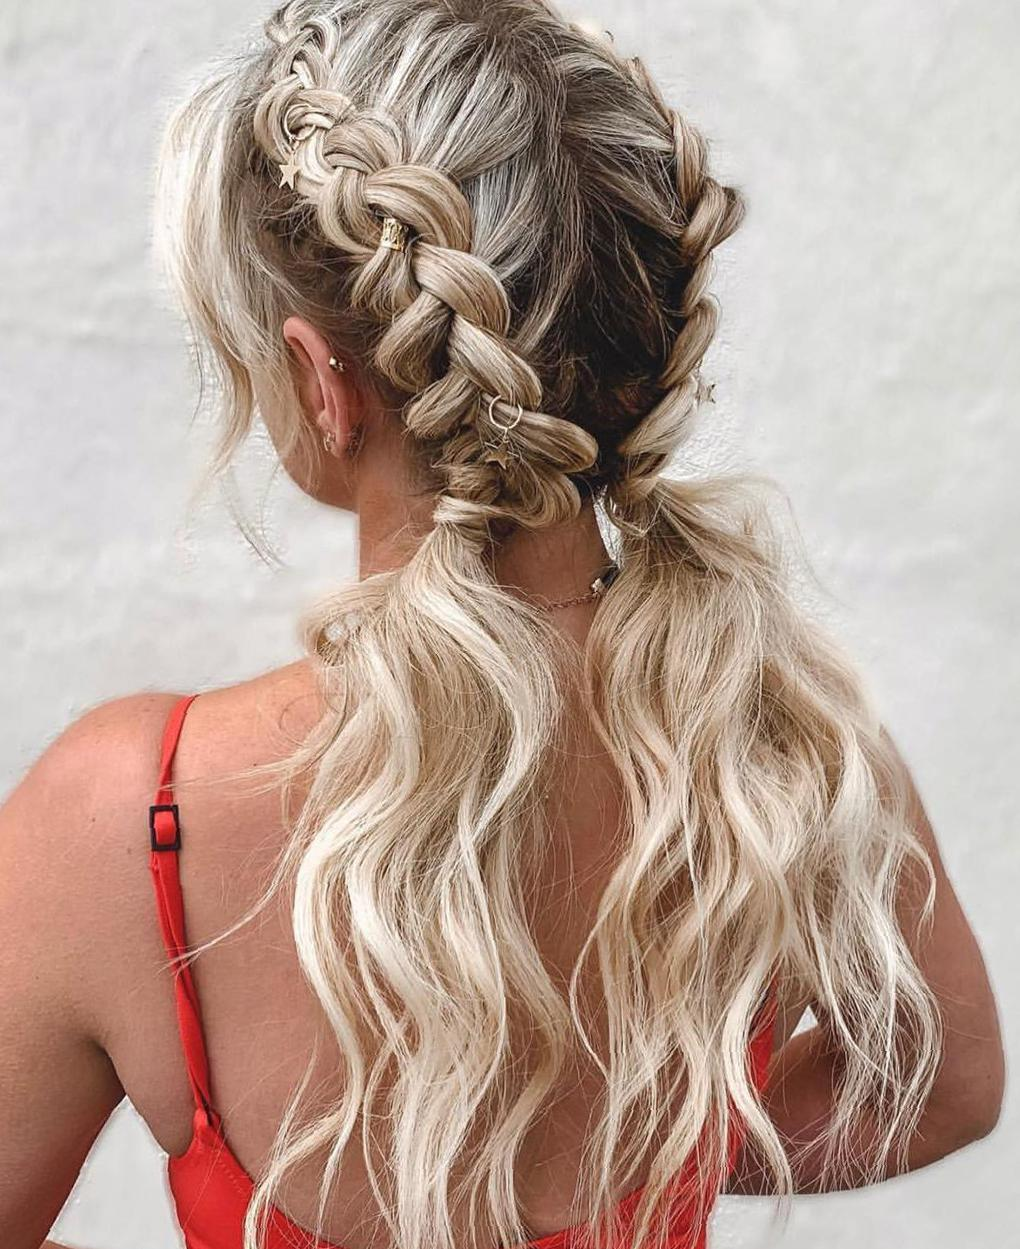 50 Trendy Double Braid Hairstyle Ideas to Keep You Cool double Dutch braids, double braids for long hair, two side braids, french braids, two french braids